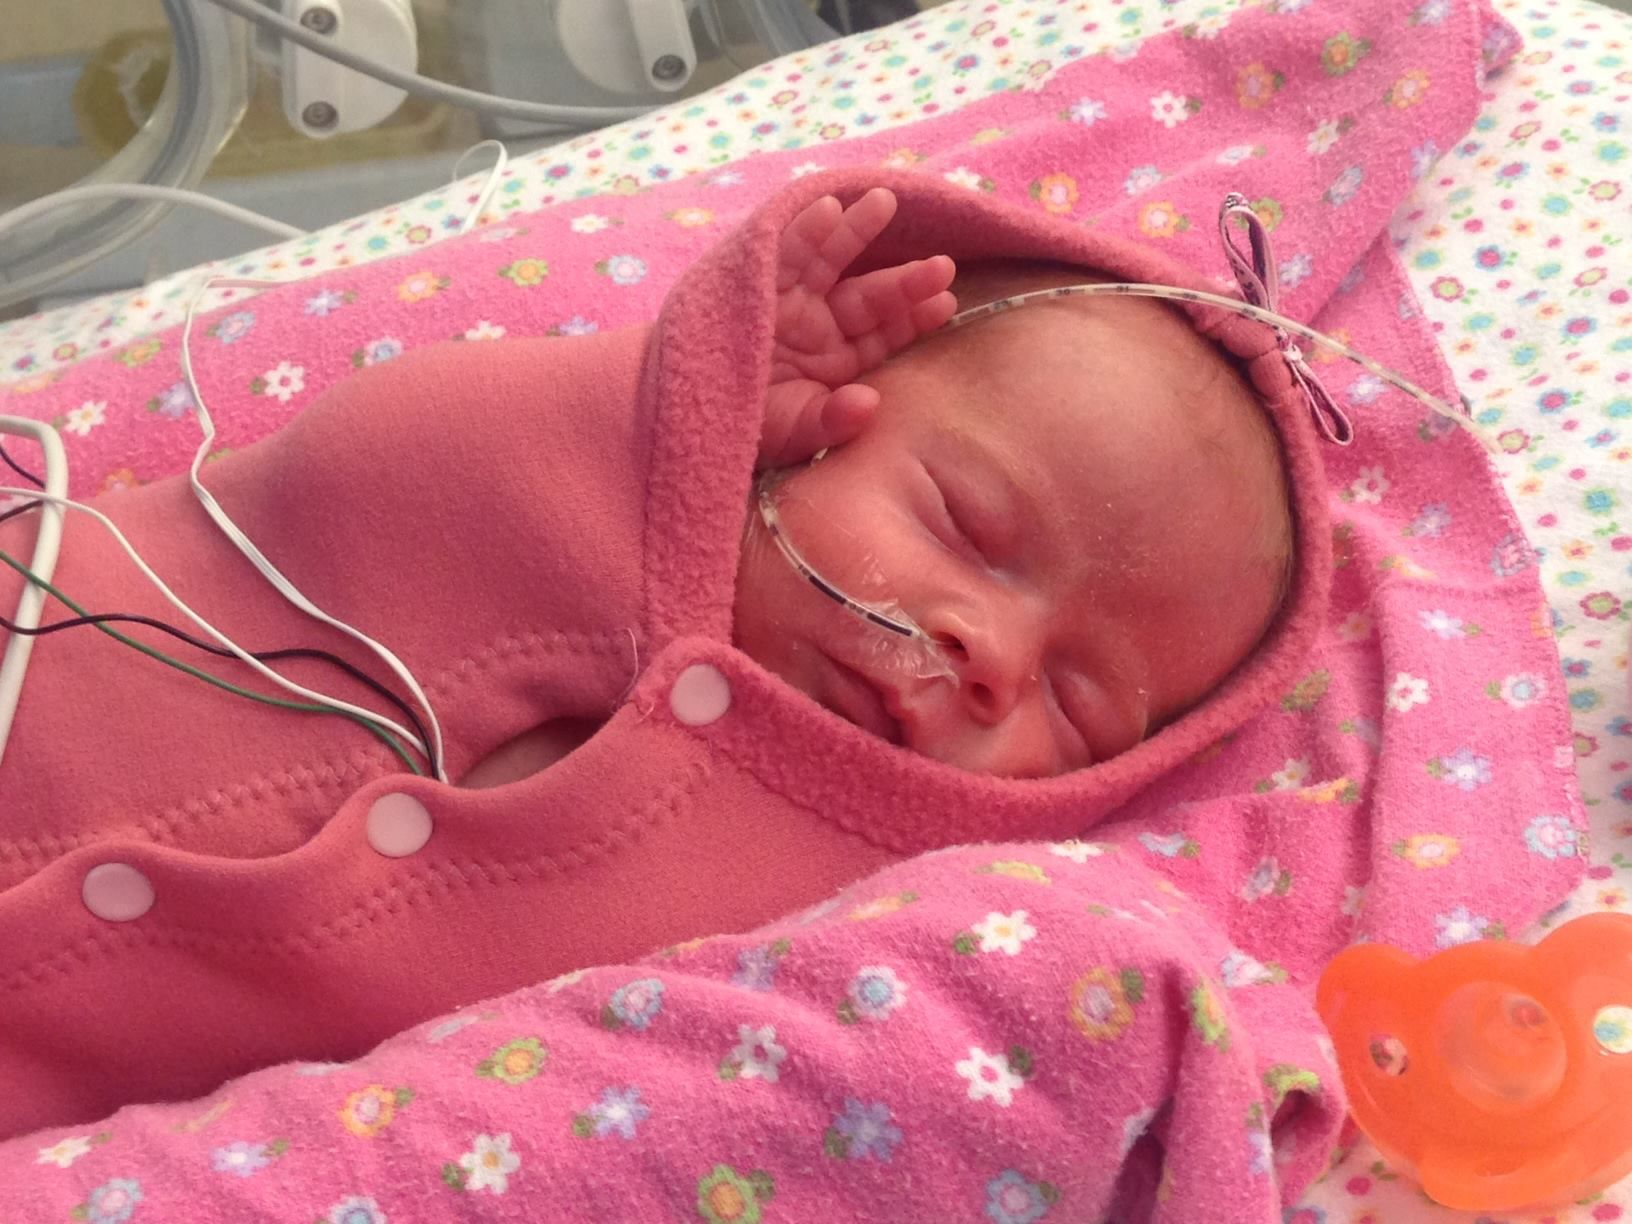 Special enclosed crib for premature babies - Premature Babies Helped With Pea Pod